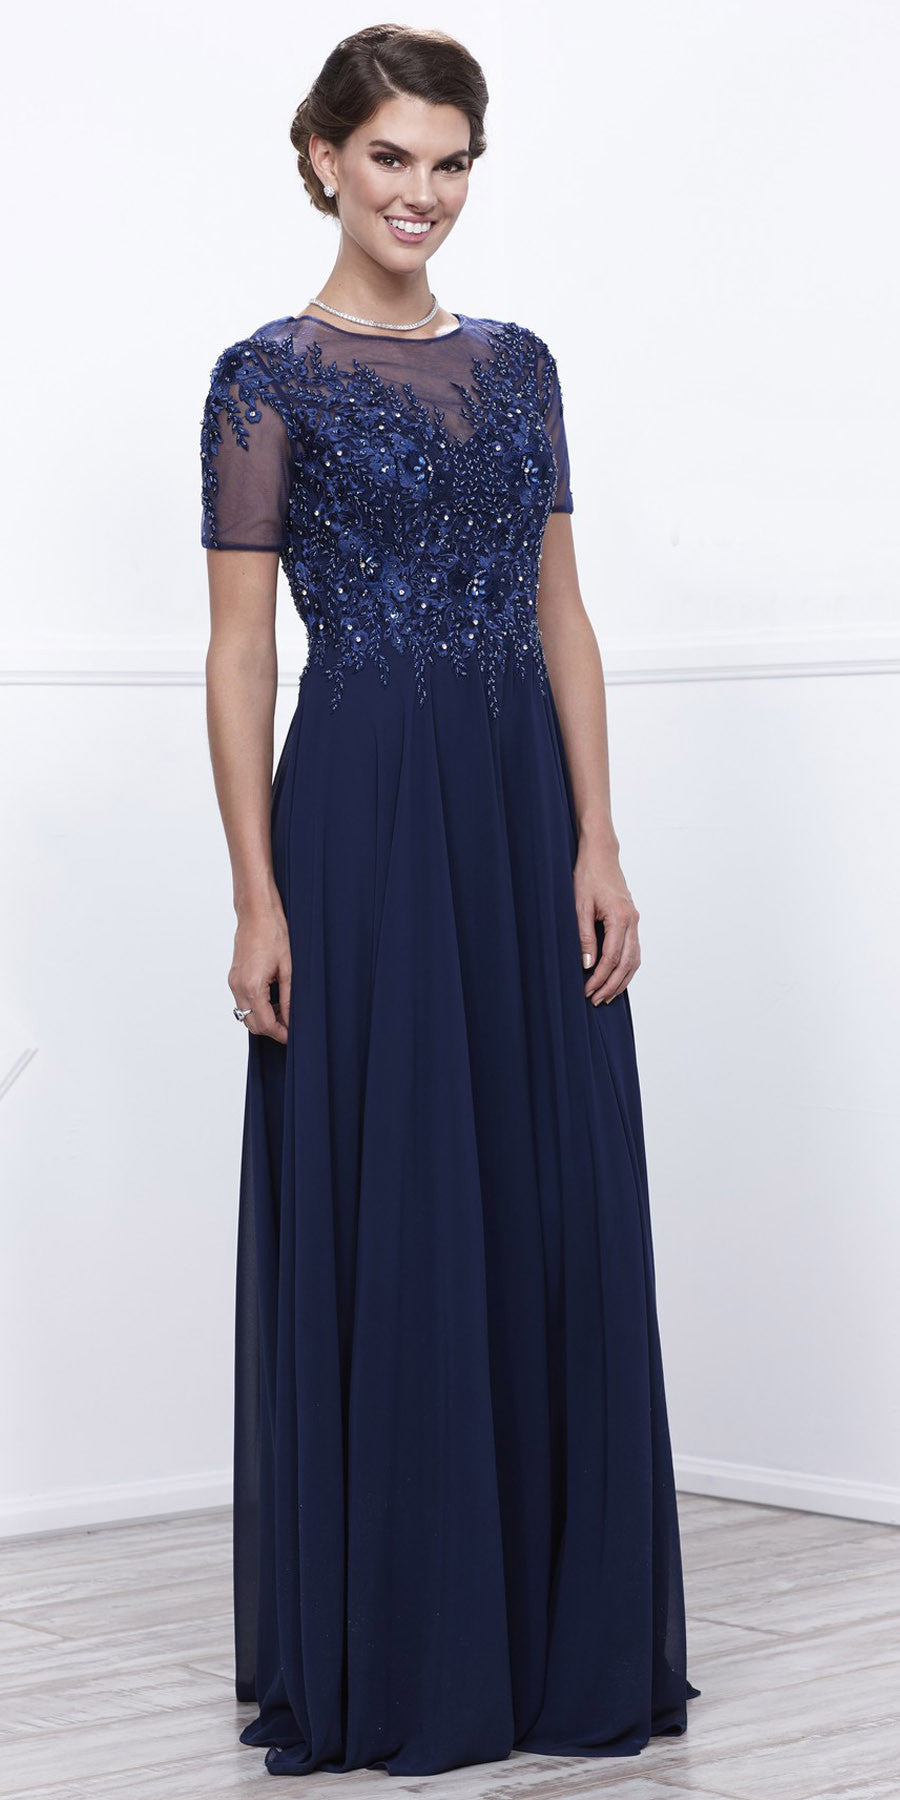 Short Sleeves Applique Bodice Floor Length Formal Dress Navy Blue